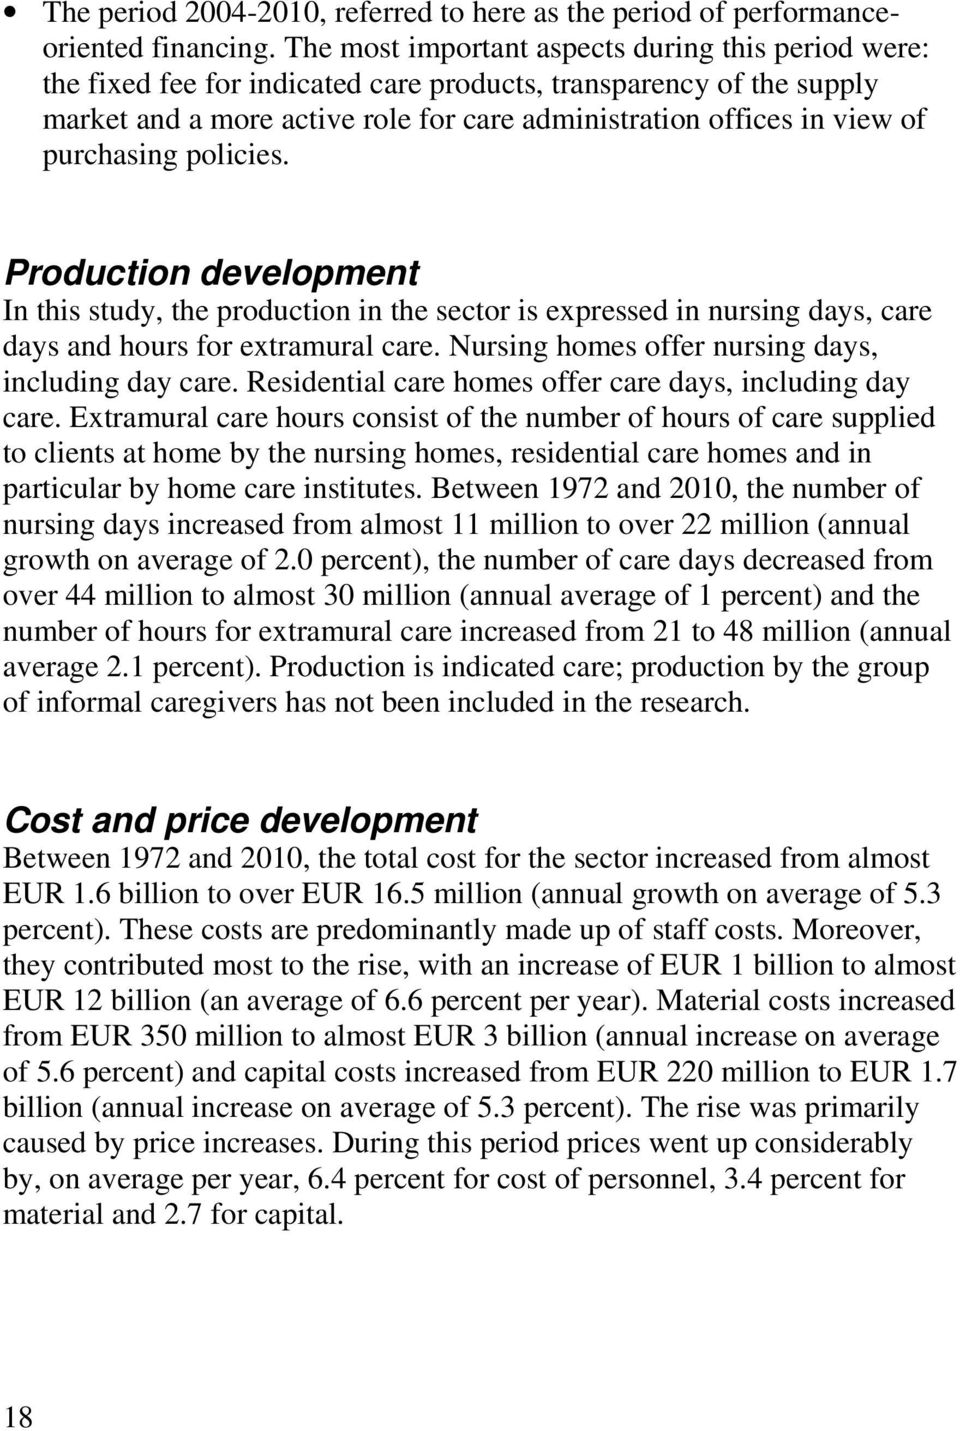 purchasing policies. Production development In this study, the production in the sector is expressed in nursing days, care days and hours for extramural care.